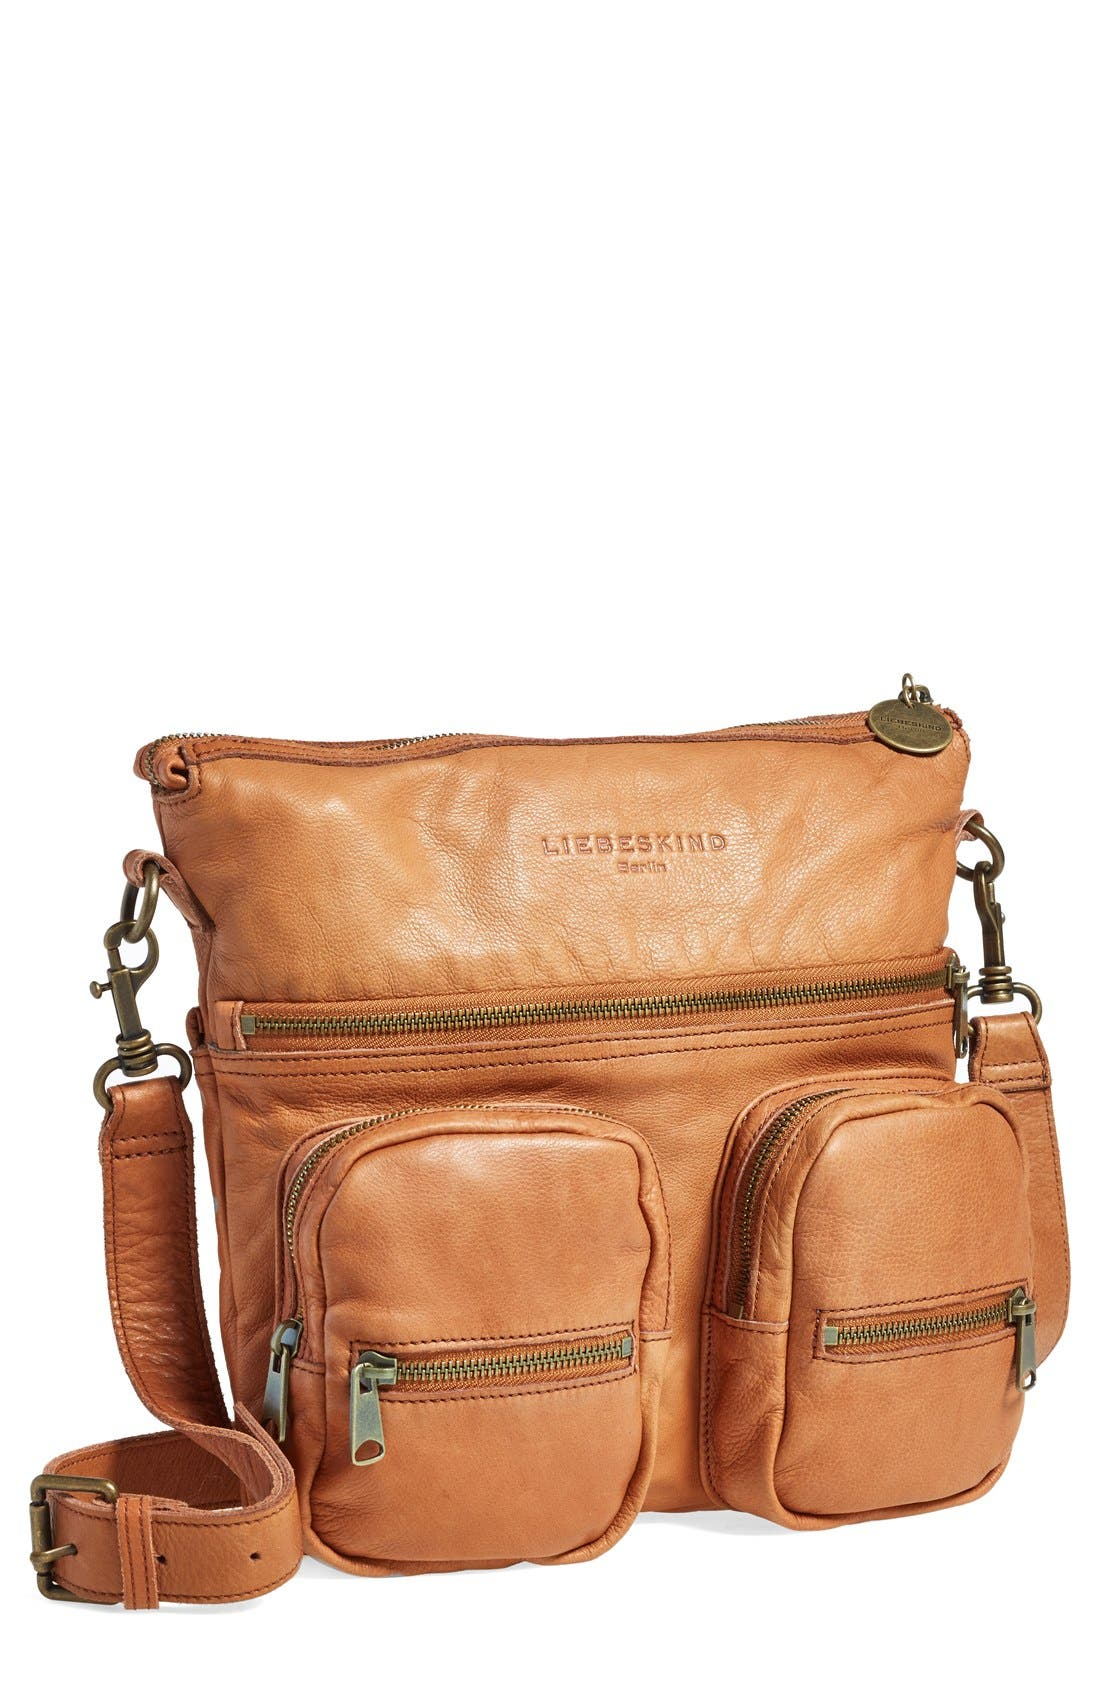 Main Image - Liebeskind 'Anny' Leather Crossbody Bag